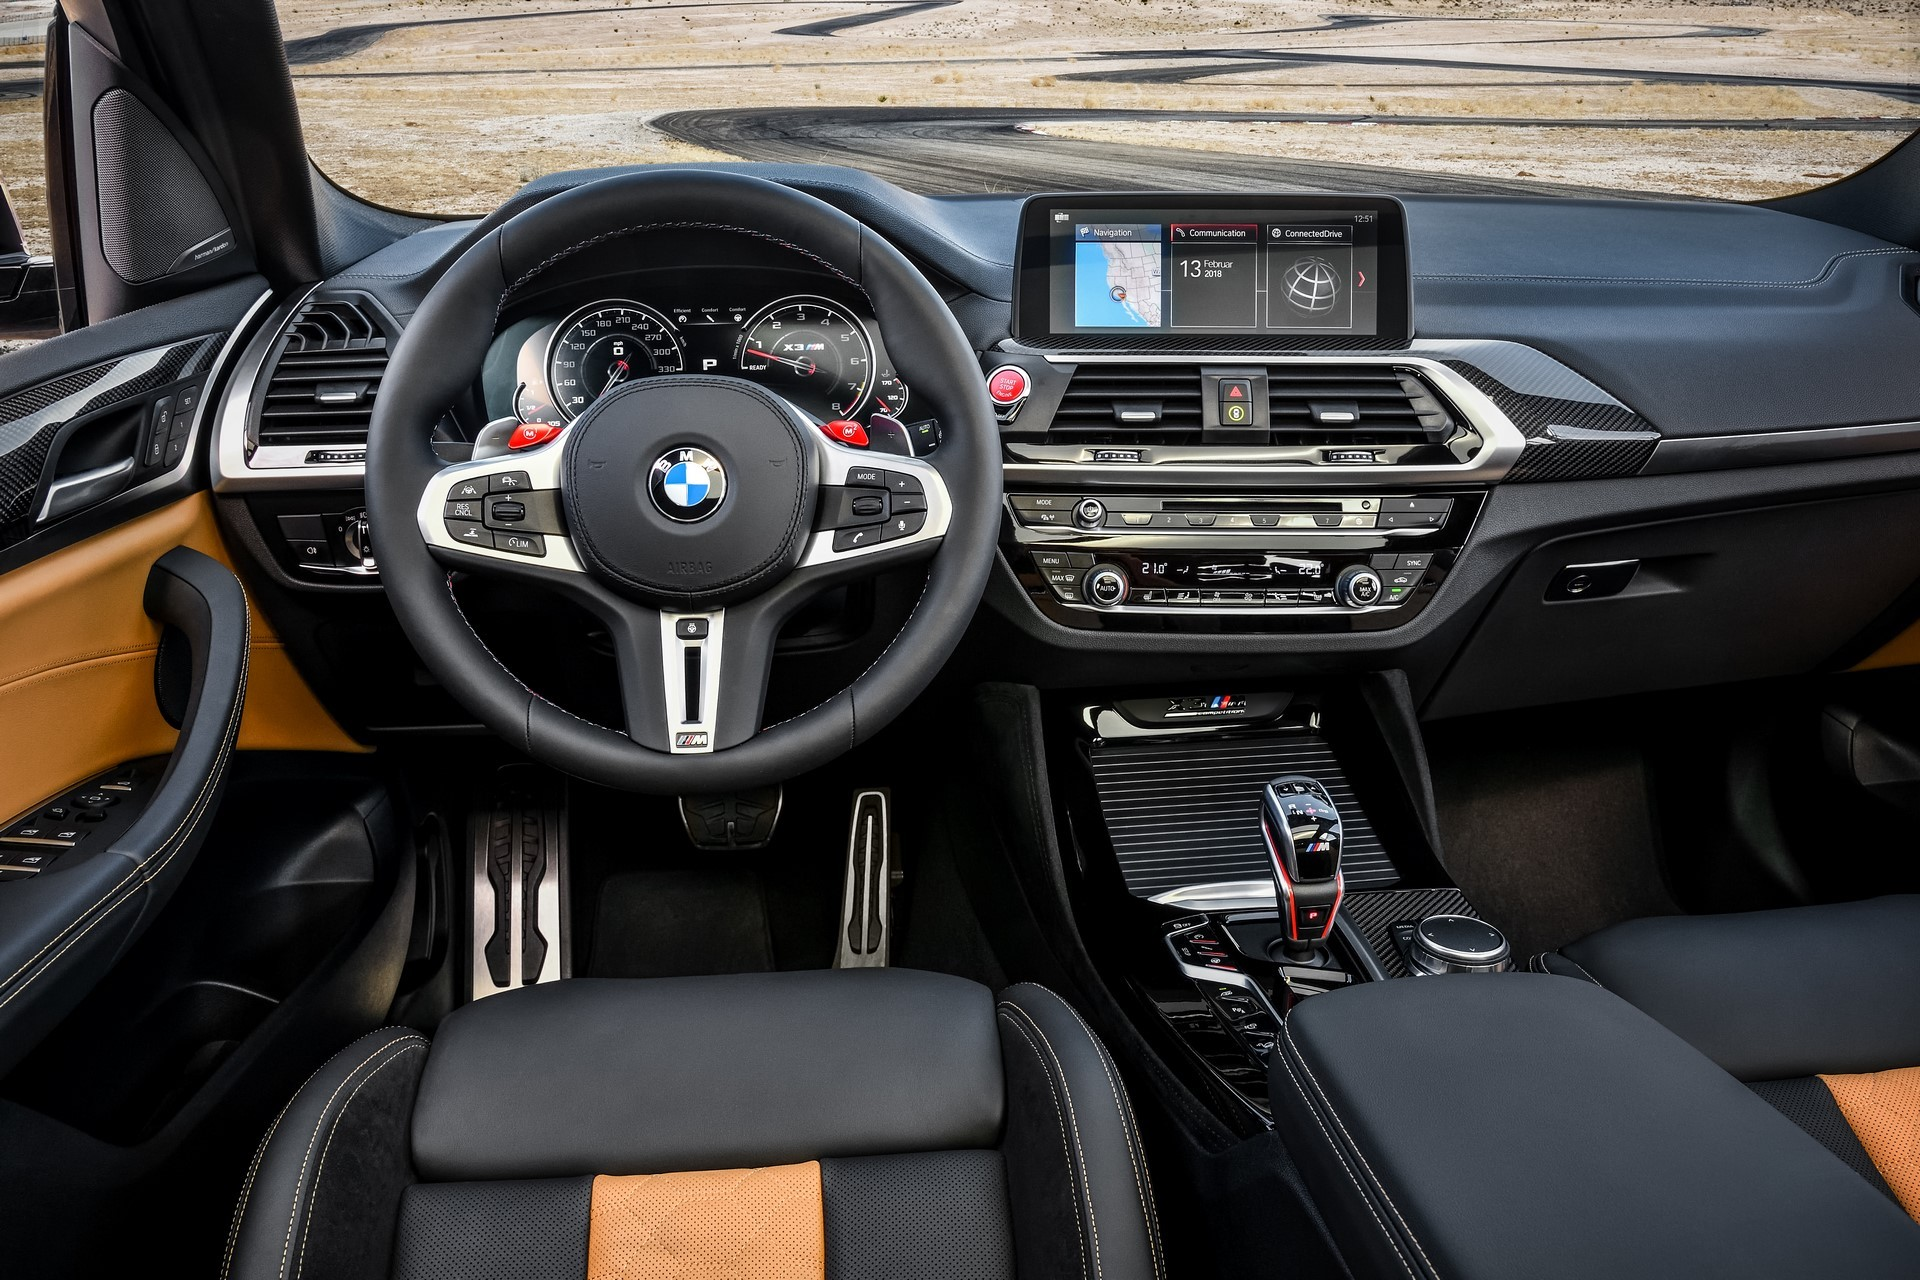 BMW X3 M and X4 M 2019 (41)